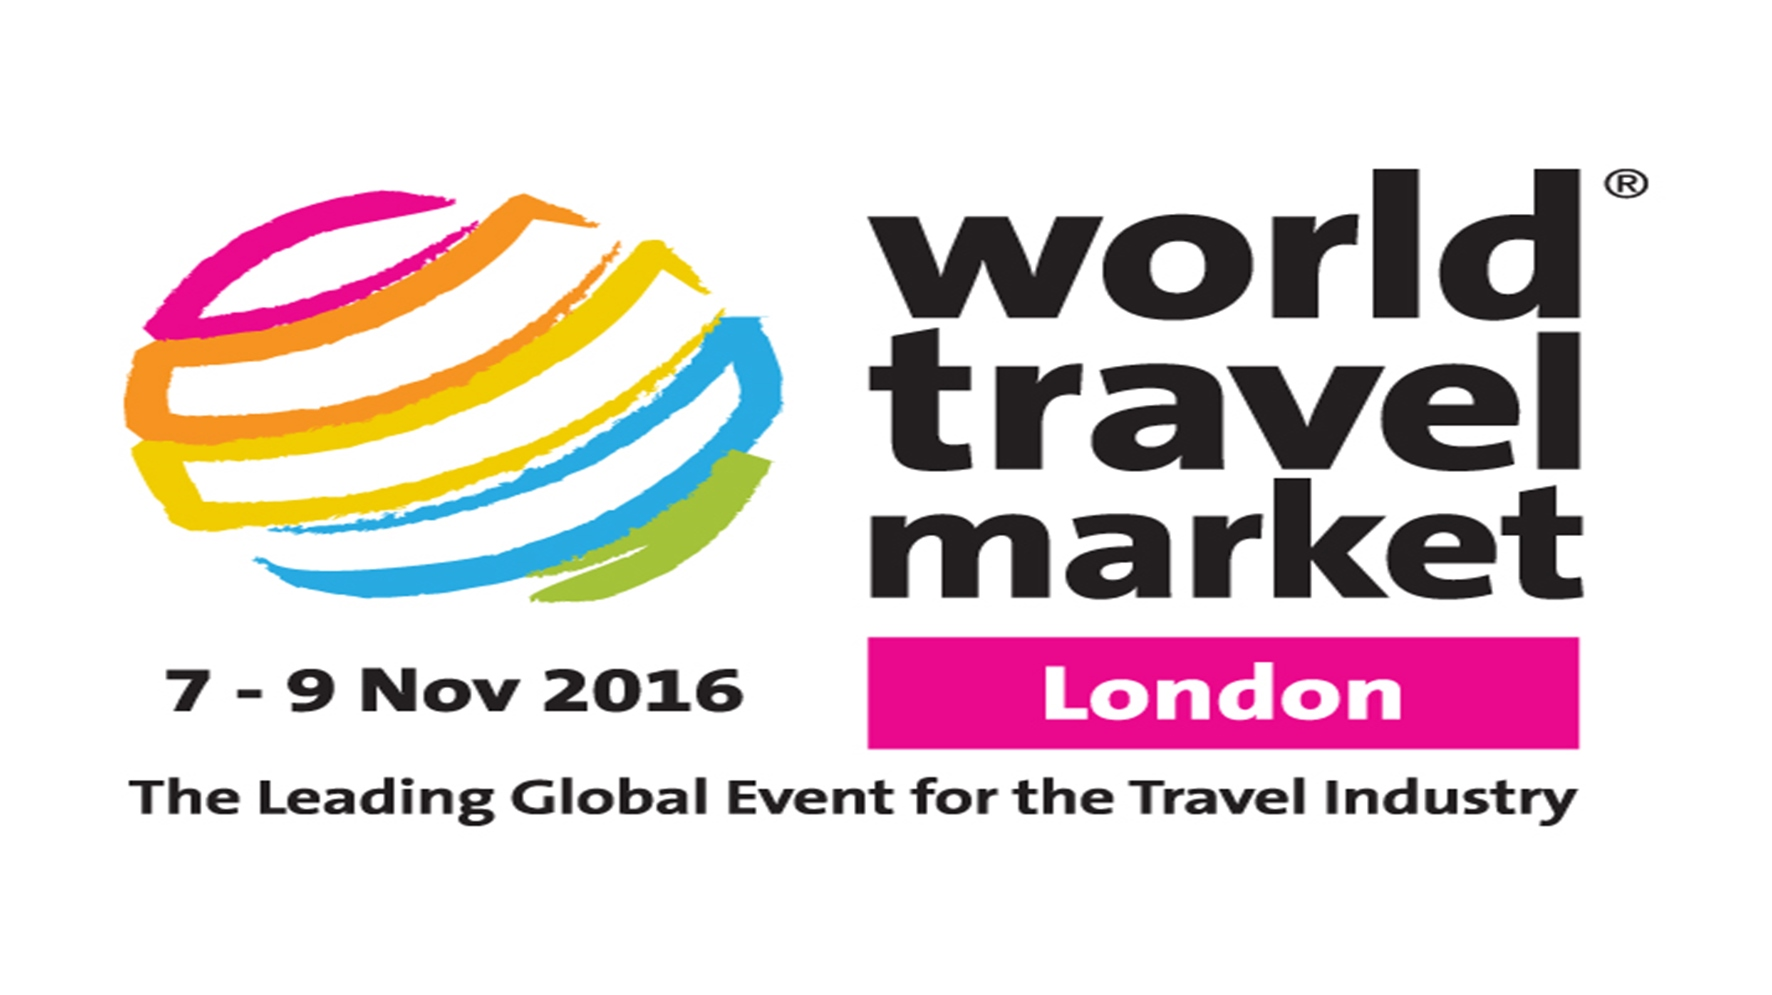 Wtm London 2016 Dates White Strap Copy